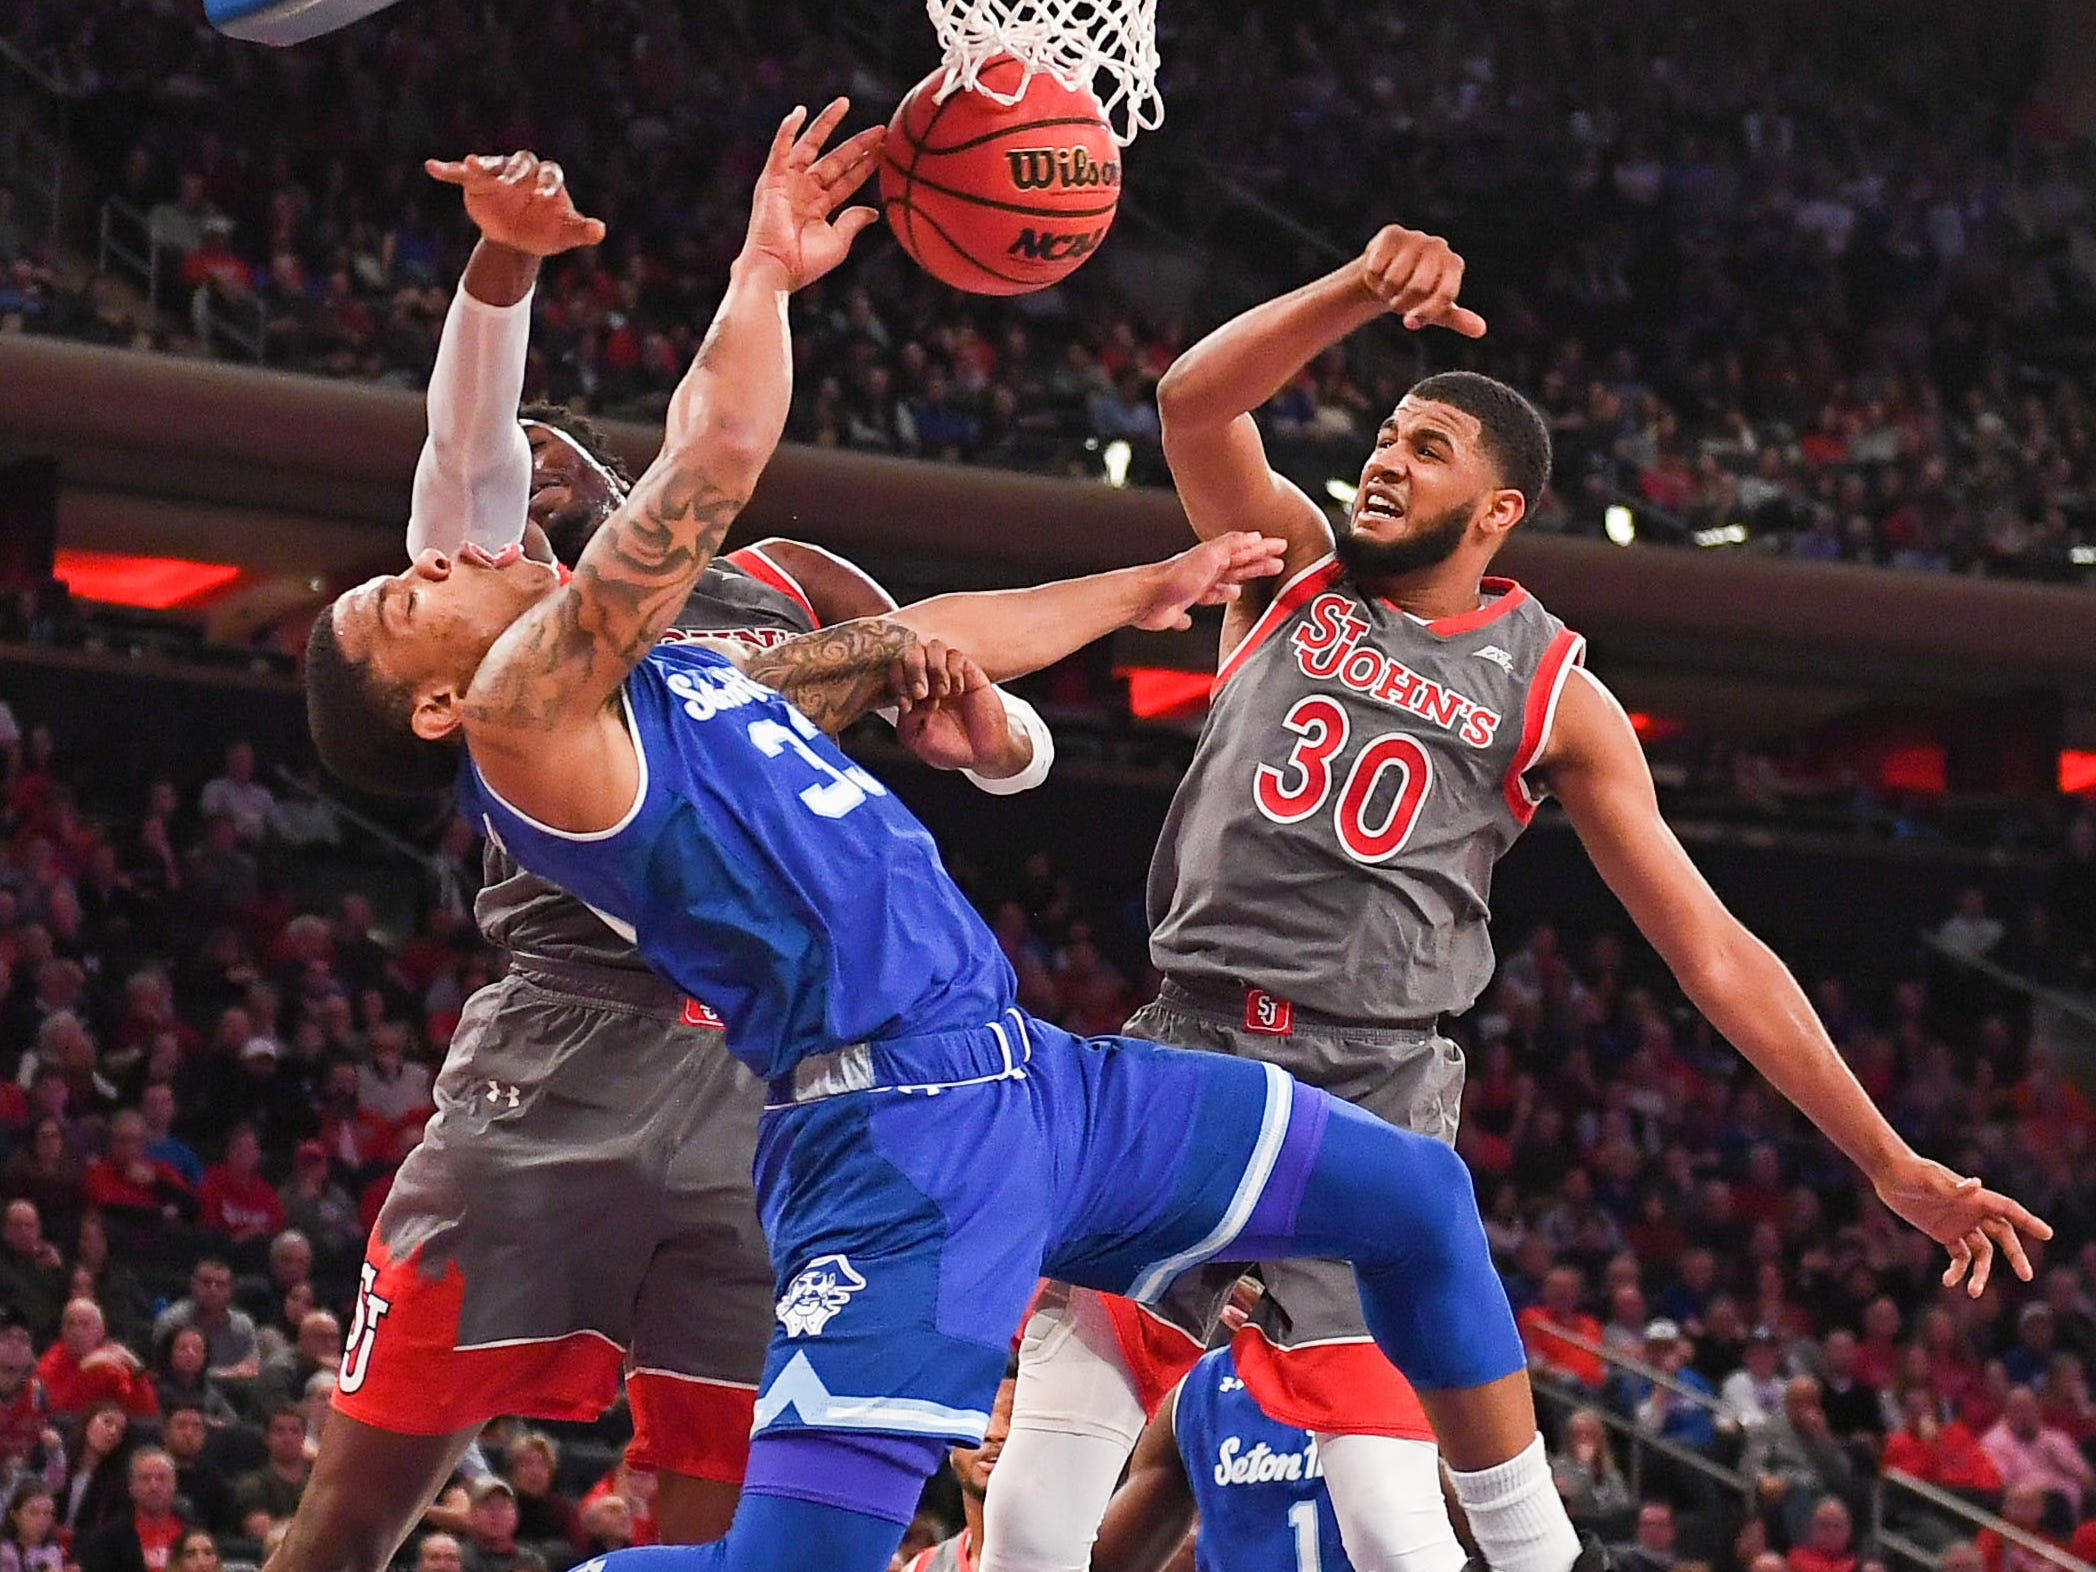 Feb. 23: Seton Hall guard Shavar Reynolds (33) loses the ball on a first-half drive to the bucket between a pair of St. John's defenders at Medison Square Garden.